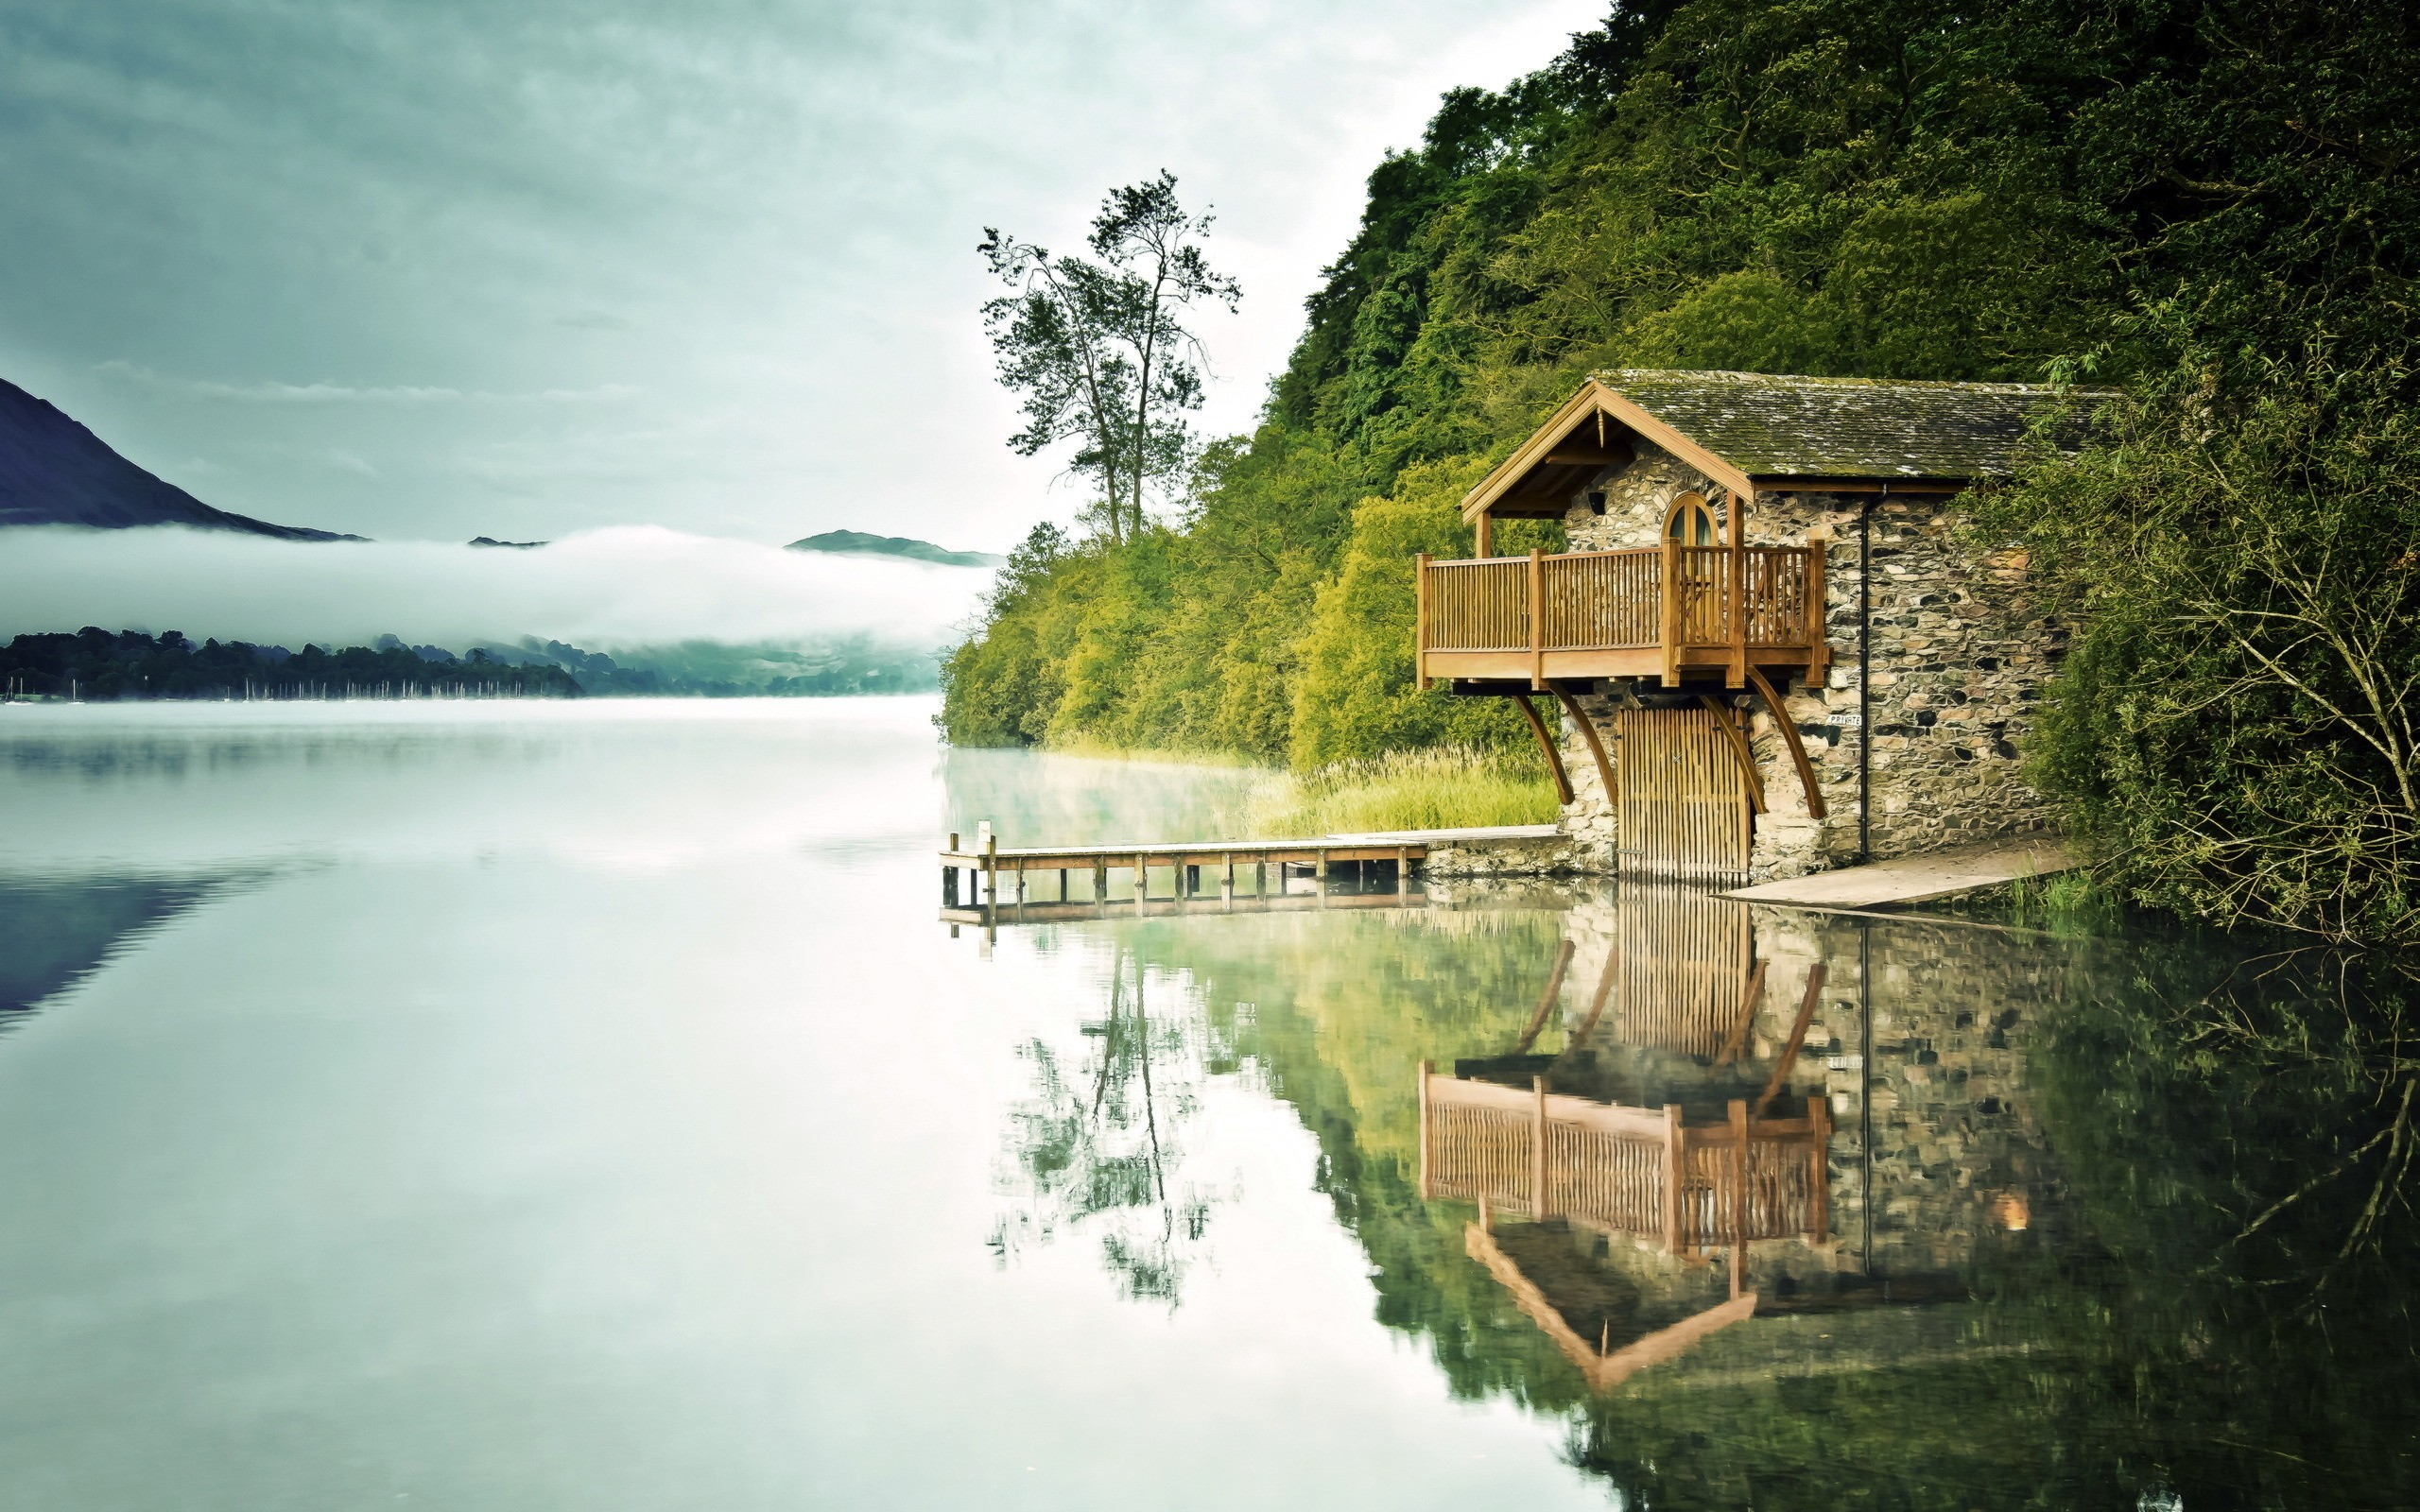 General 2560x1600 nature reflection lake boathouses mist